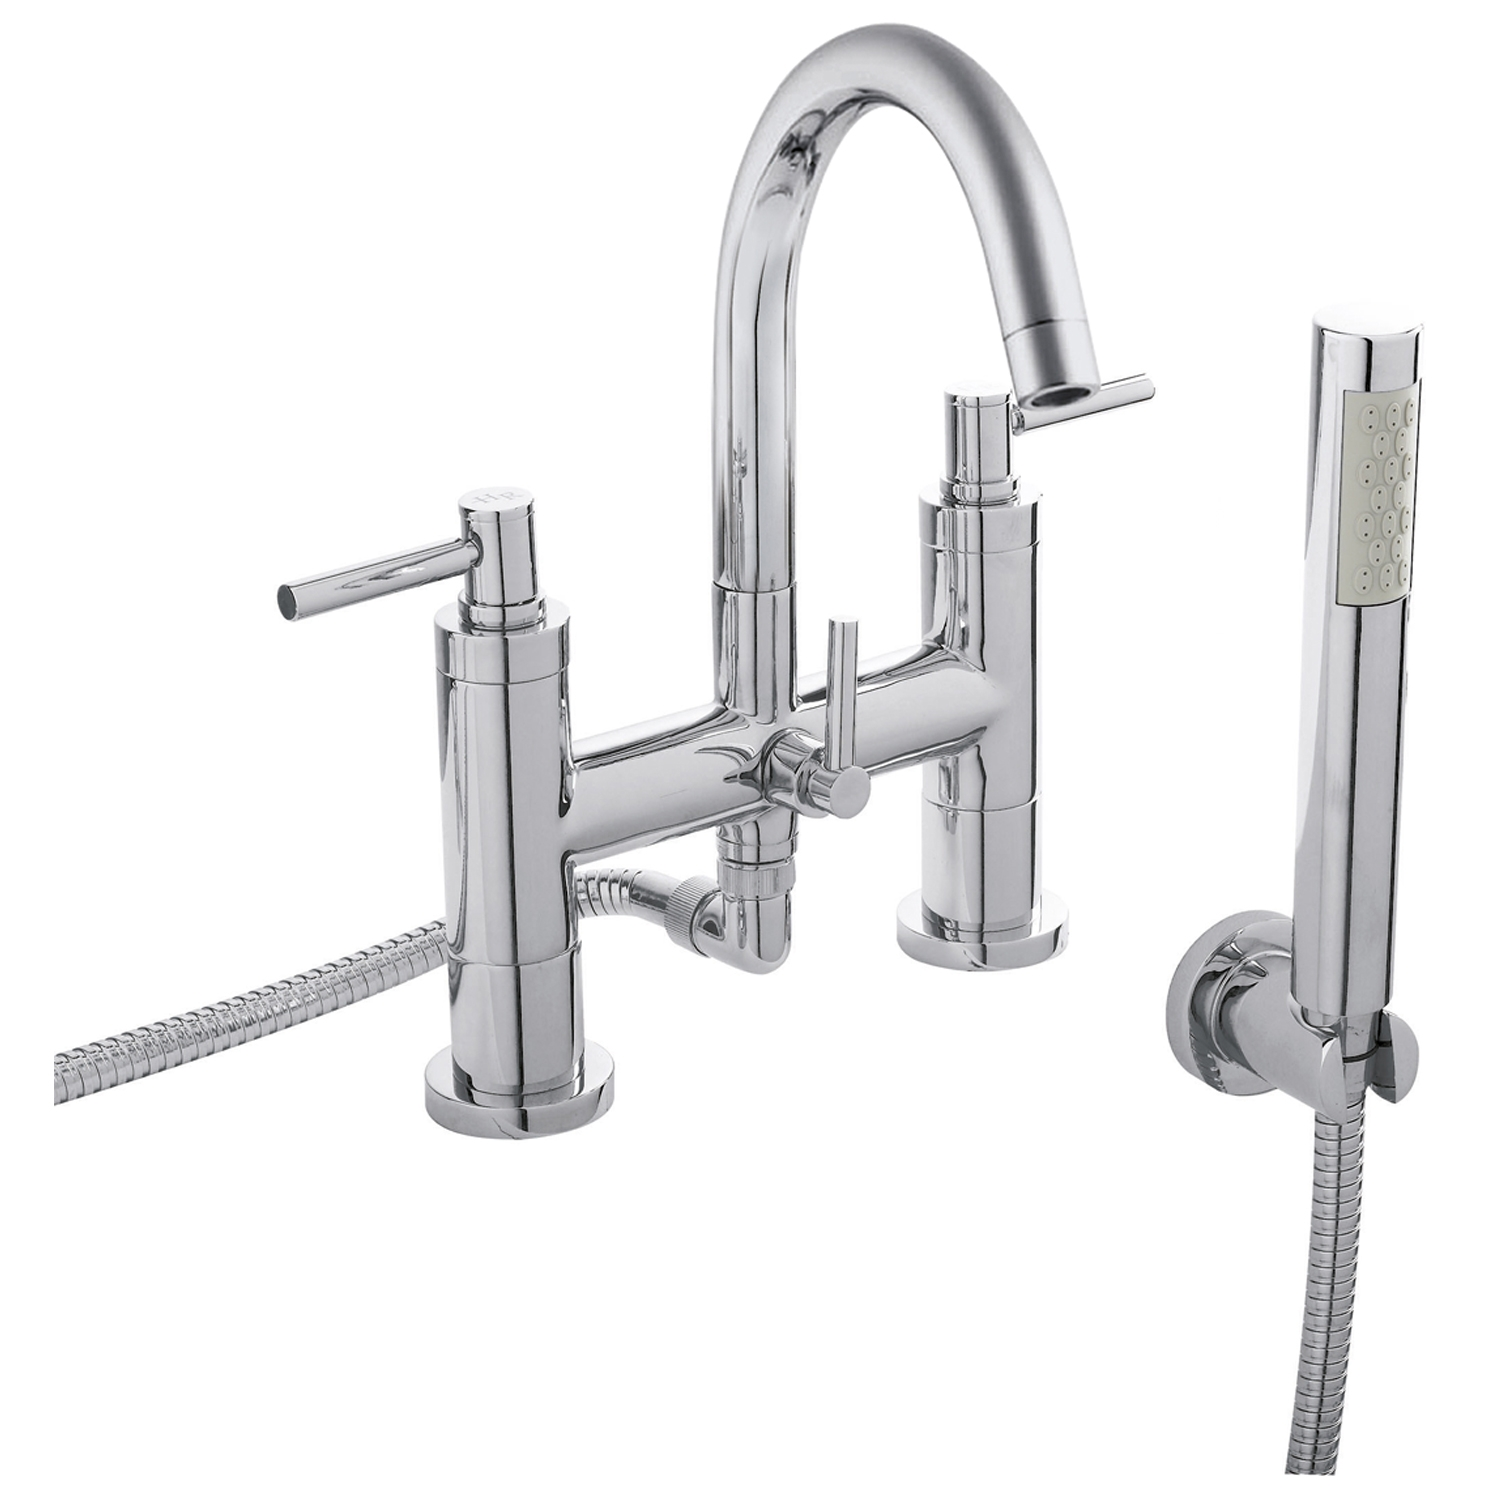 Hudson Reed Tec Lever Basin Mixer Tap and Bath Shower Mixer Tap, Chrome-0